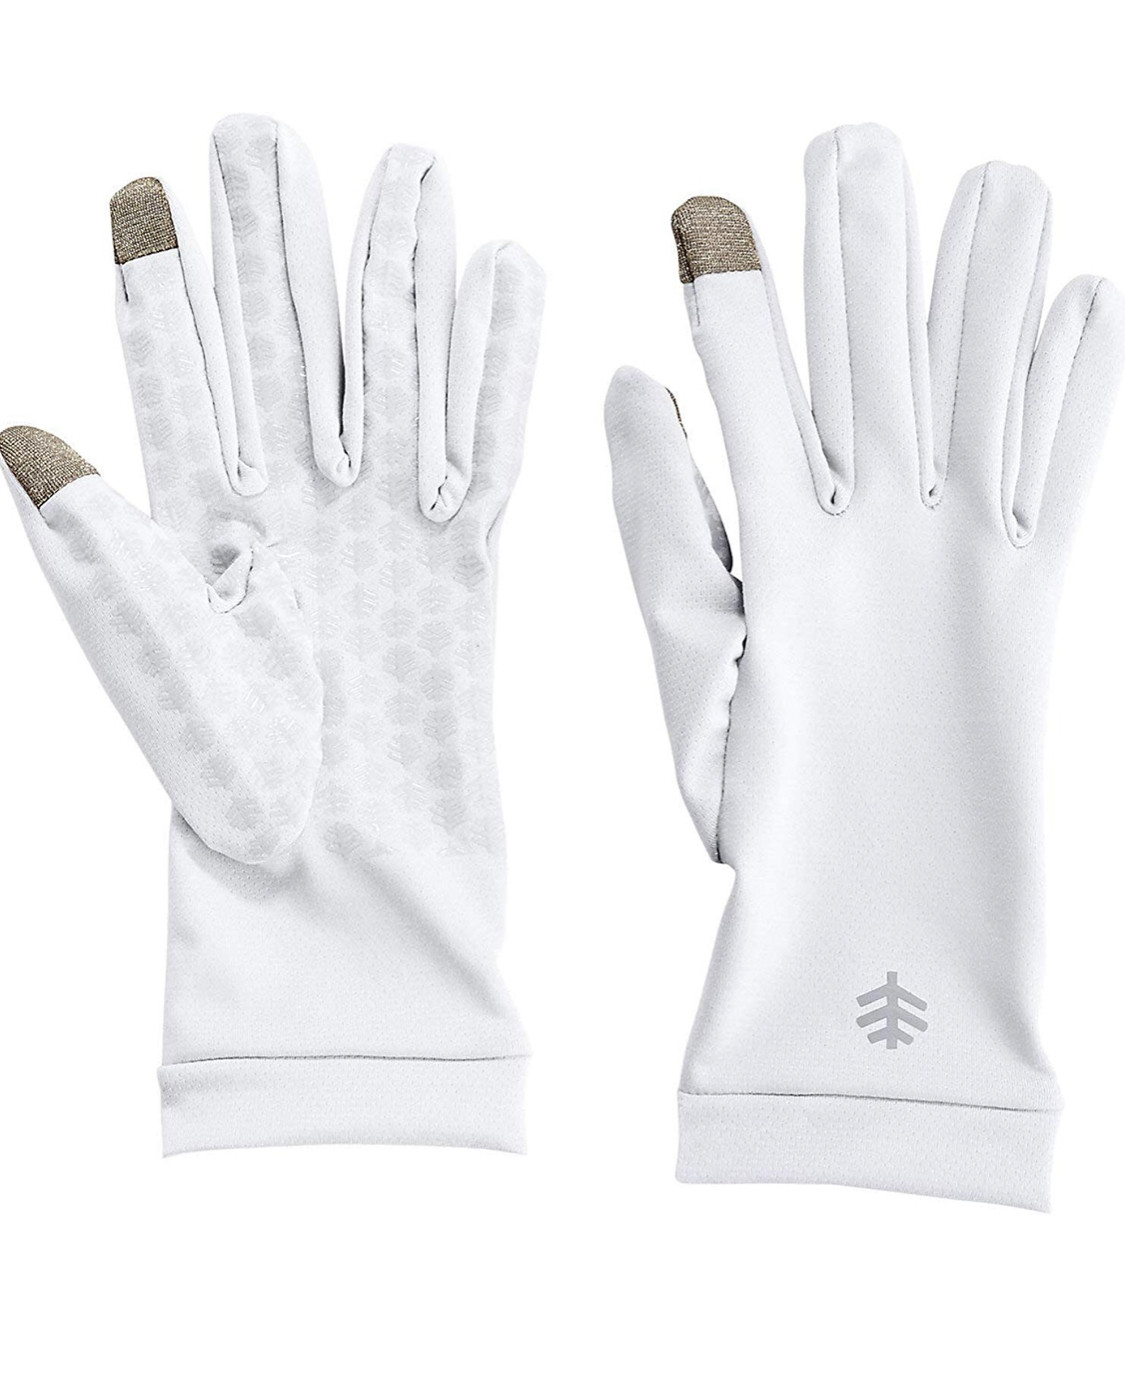 COOLIBAR UPF 50+ SUN WHITE GLOVES - MEDIUM